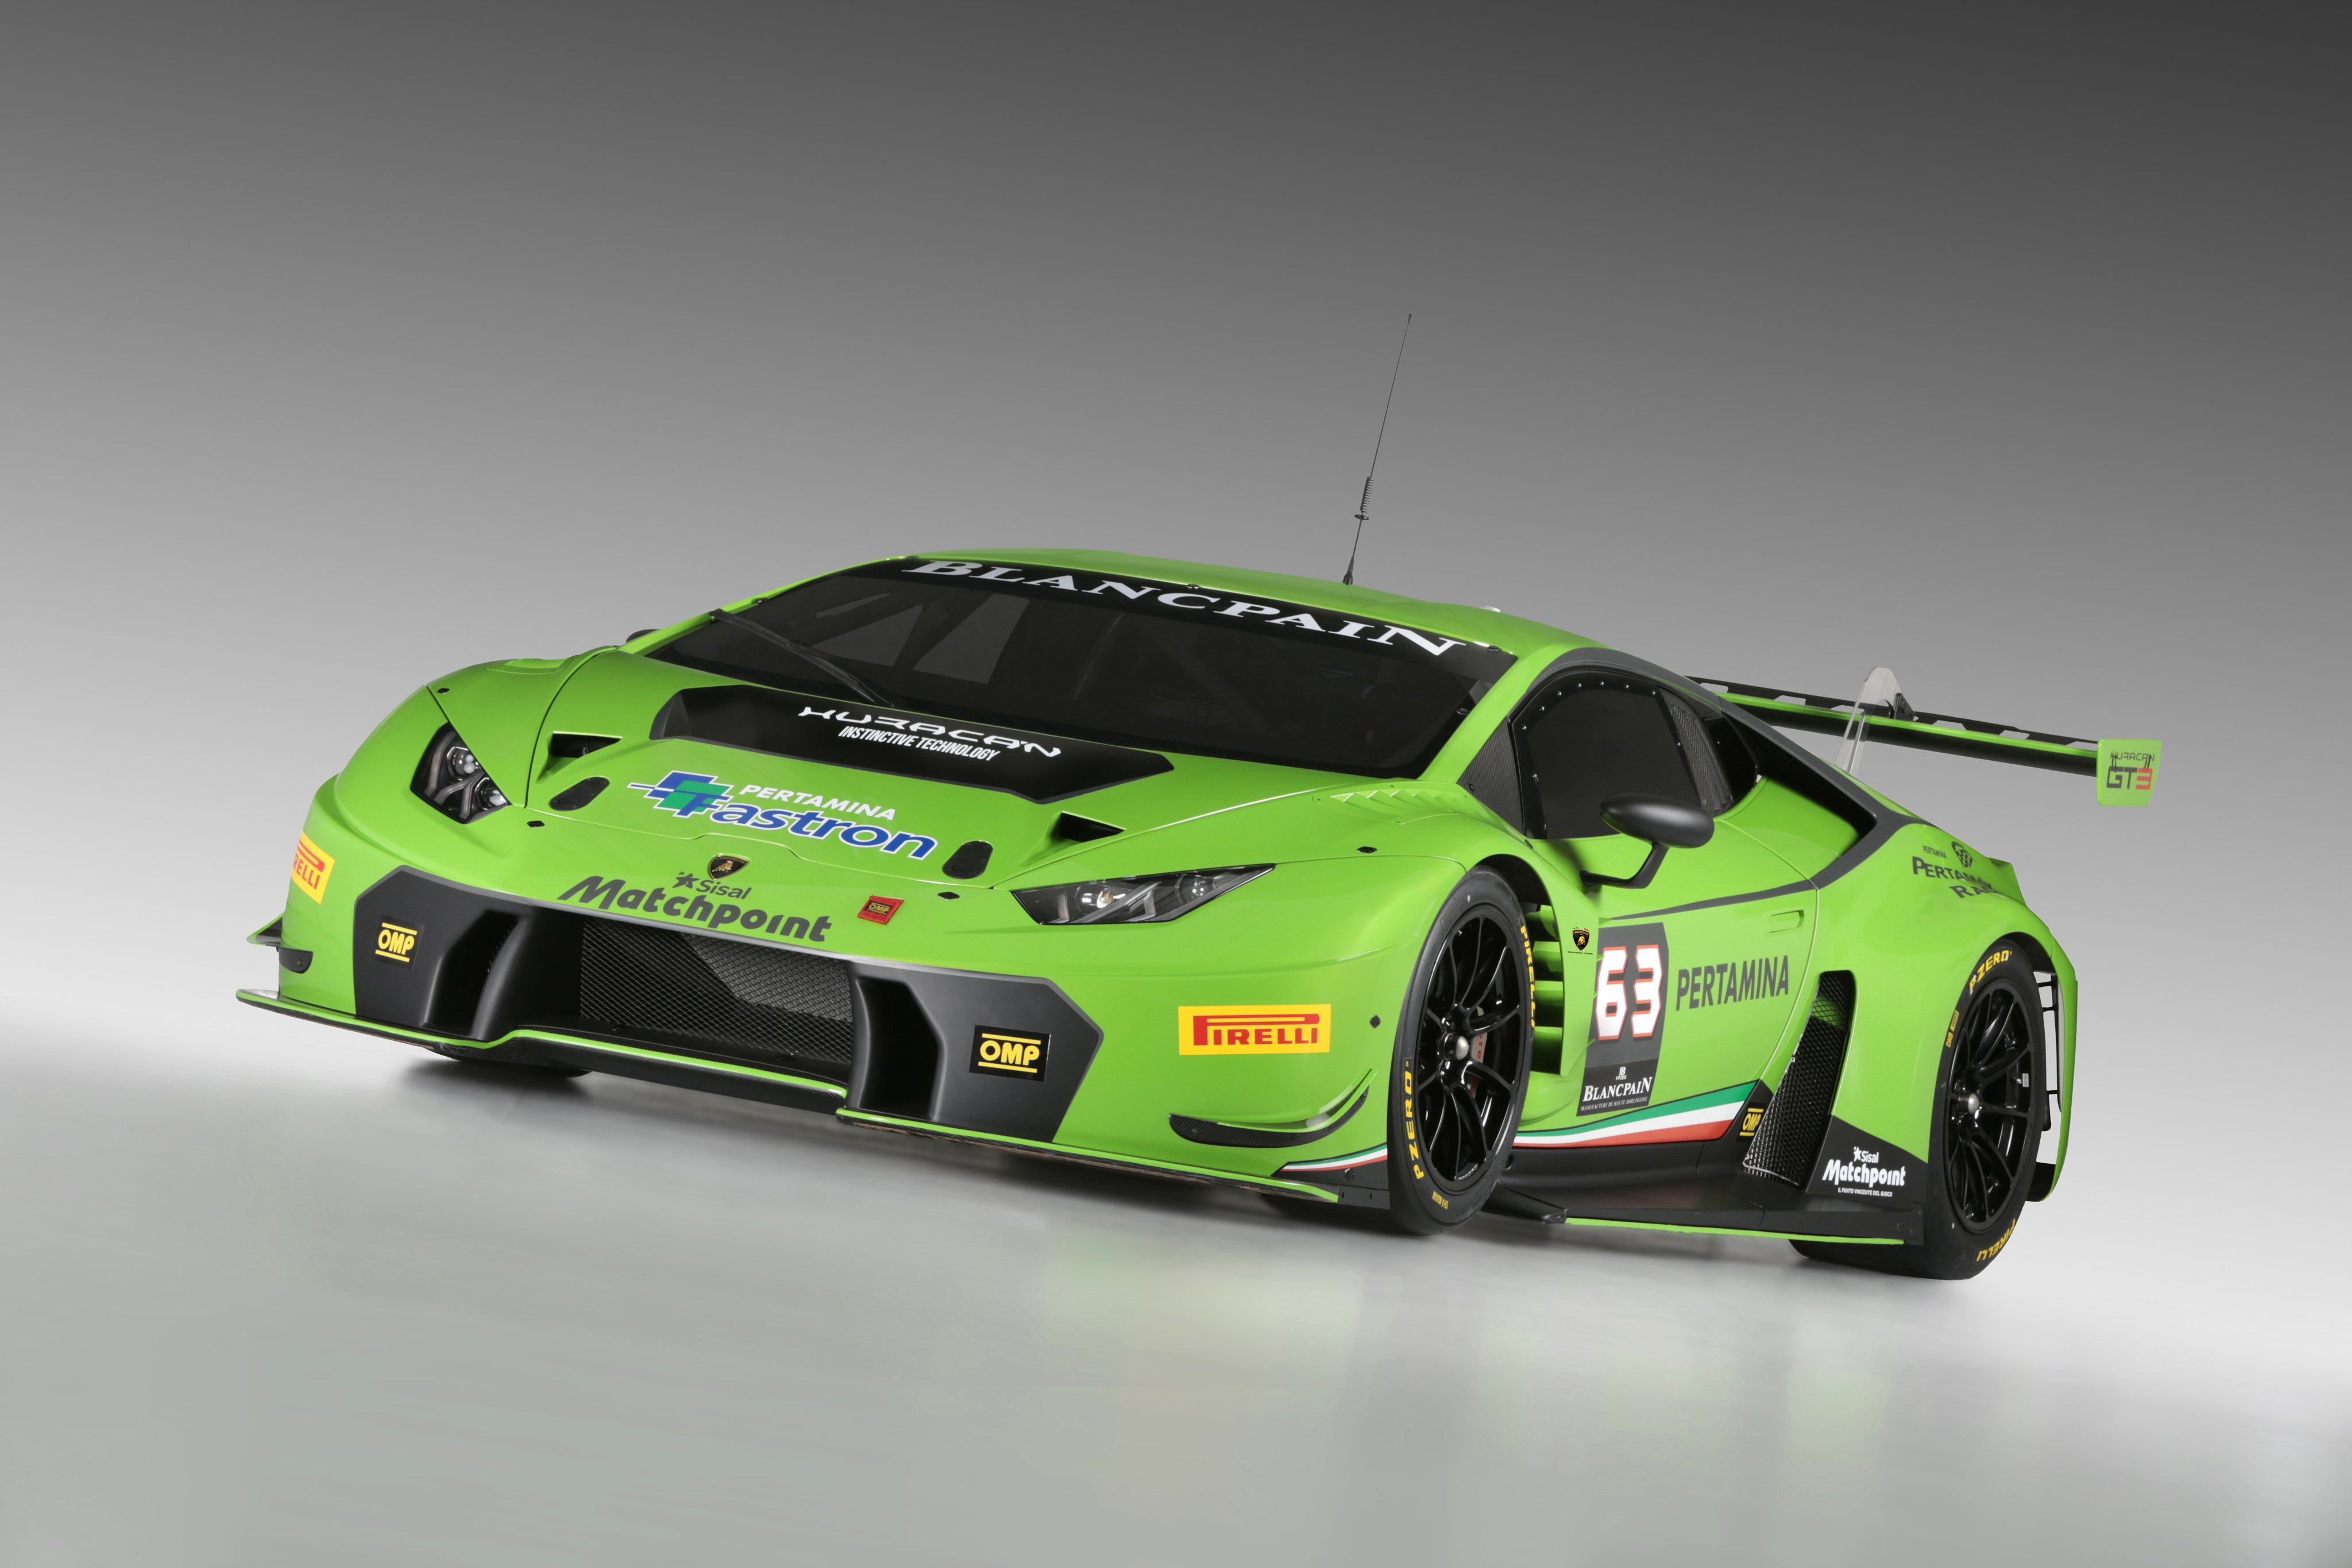 2015 lamborghini huracan gt3 race racing supercar wallpaper 4096x2731 599573 wallpaperup. Black Bedroom Furniture Sets. Home Design Ideas